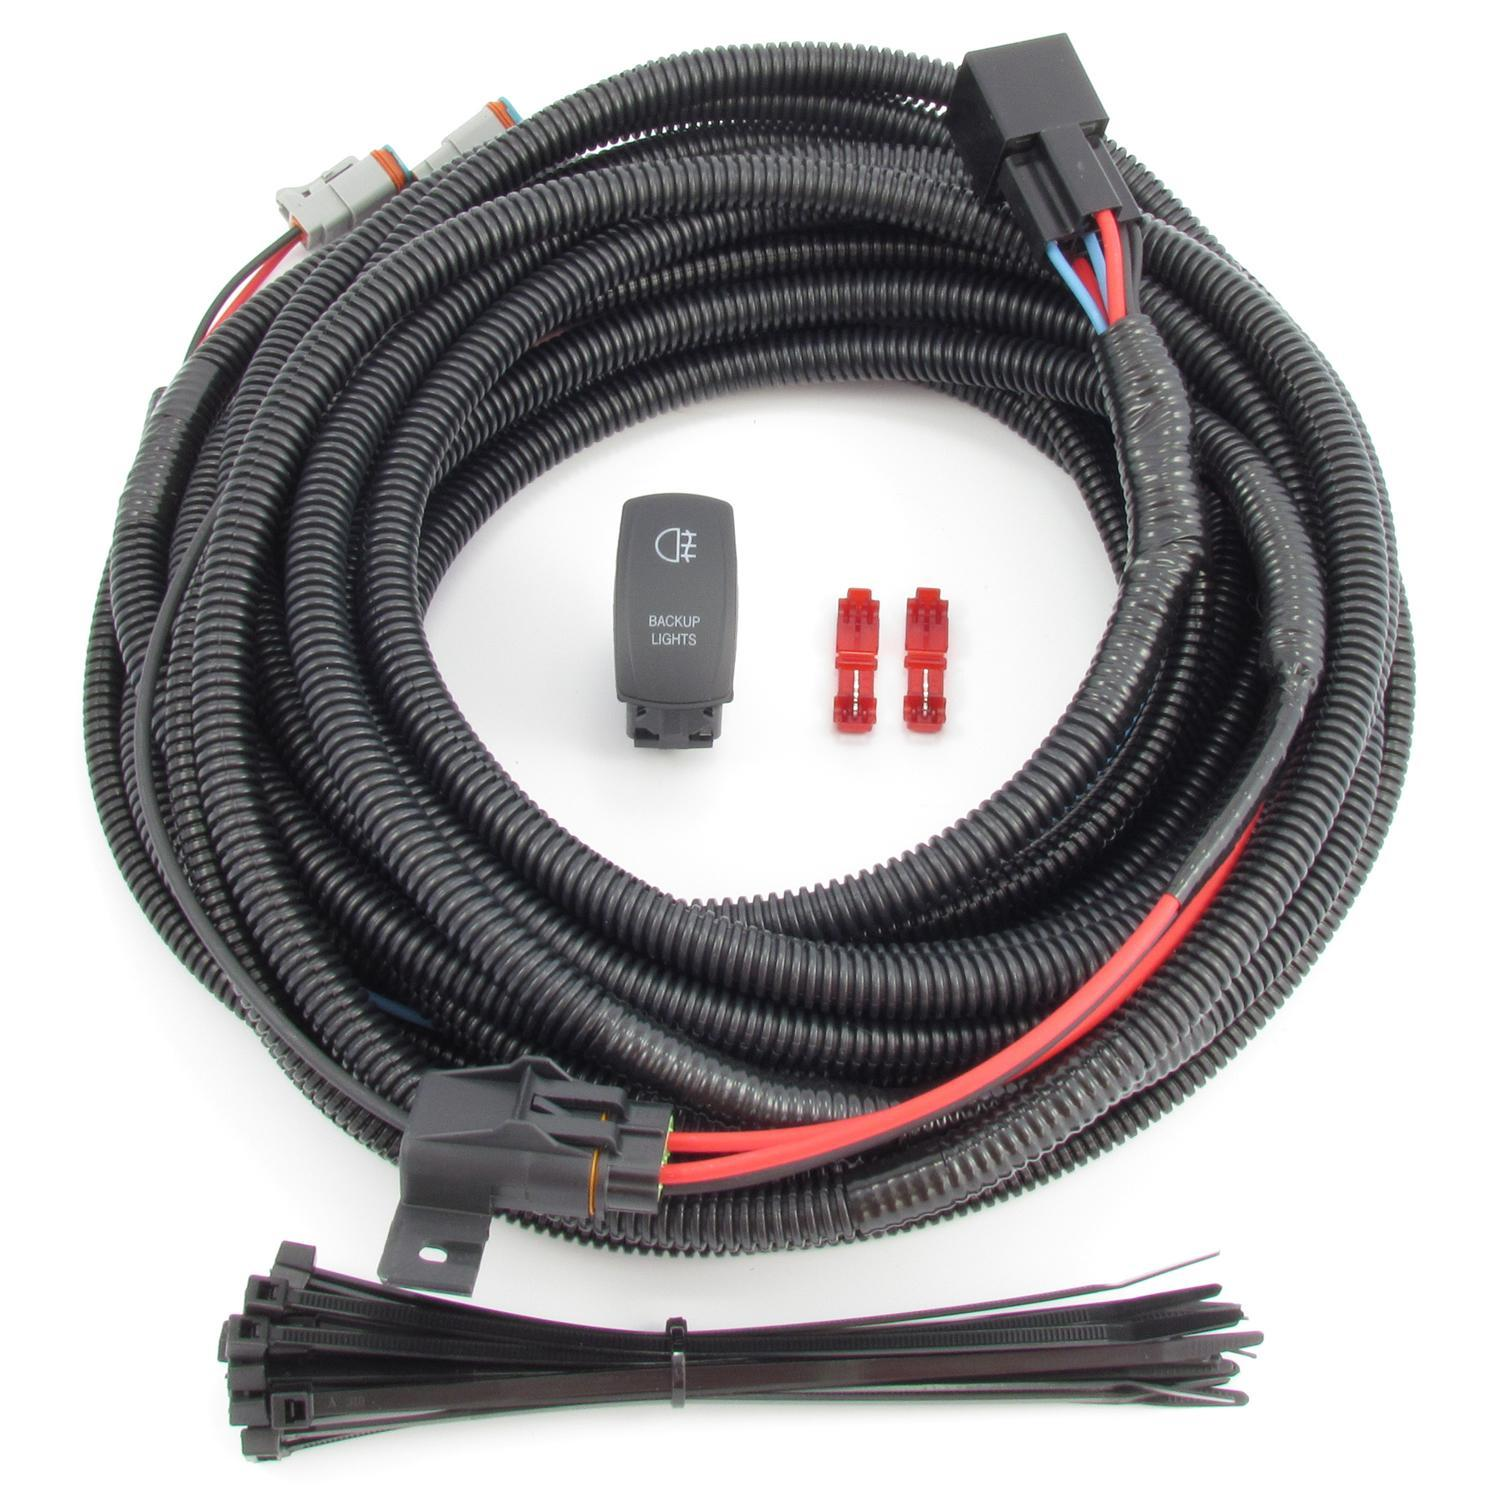 5051 backup reverse lighting wiring & switch kit fits any vehicle! independent control auxiliary lamp wire harness kit instructions at gsmx.co